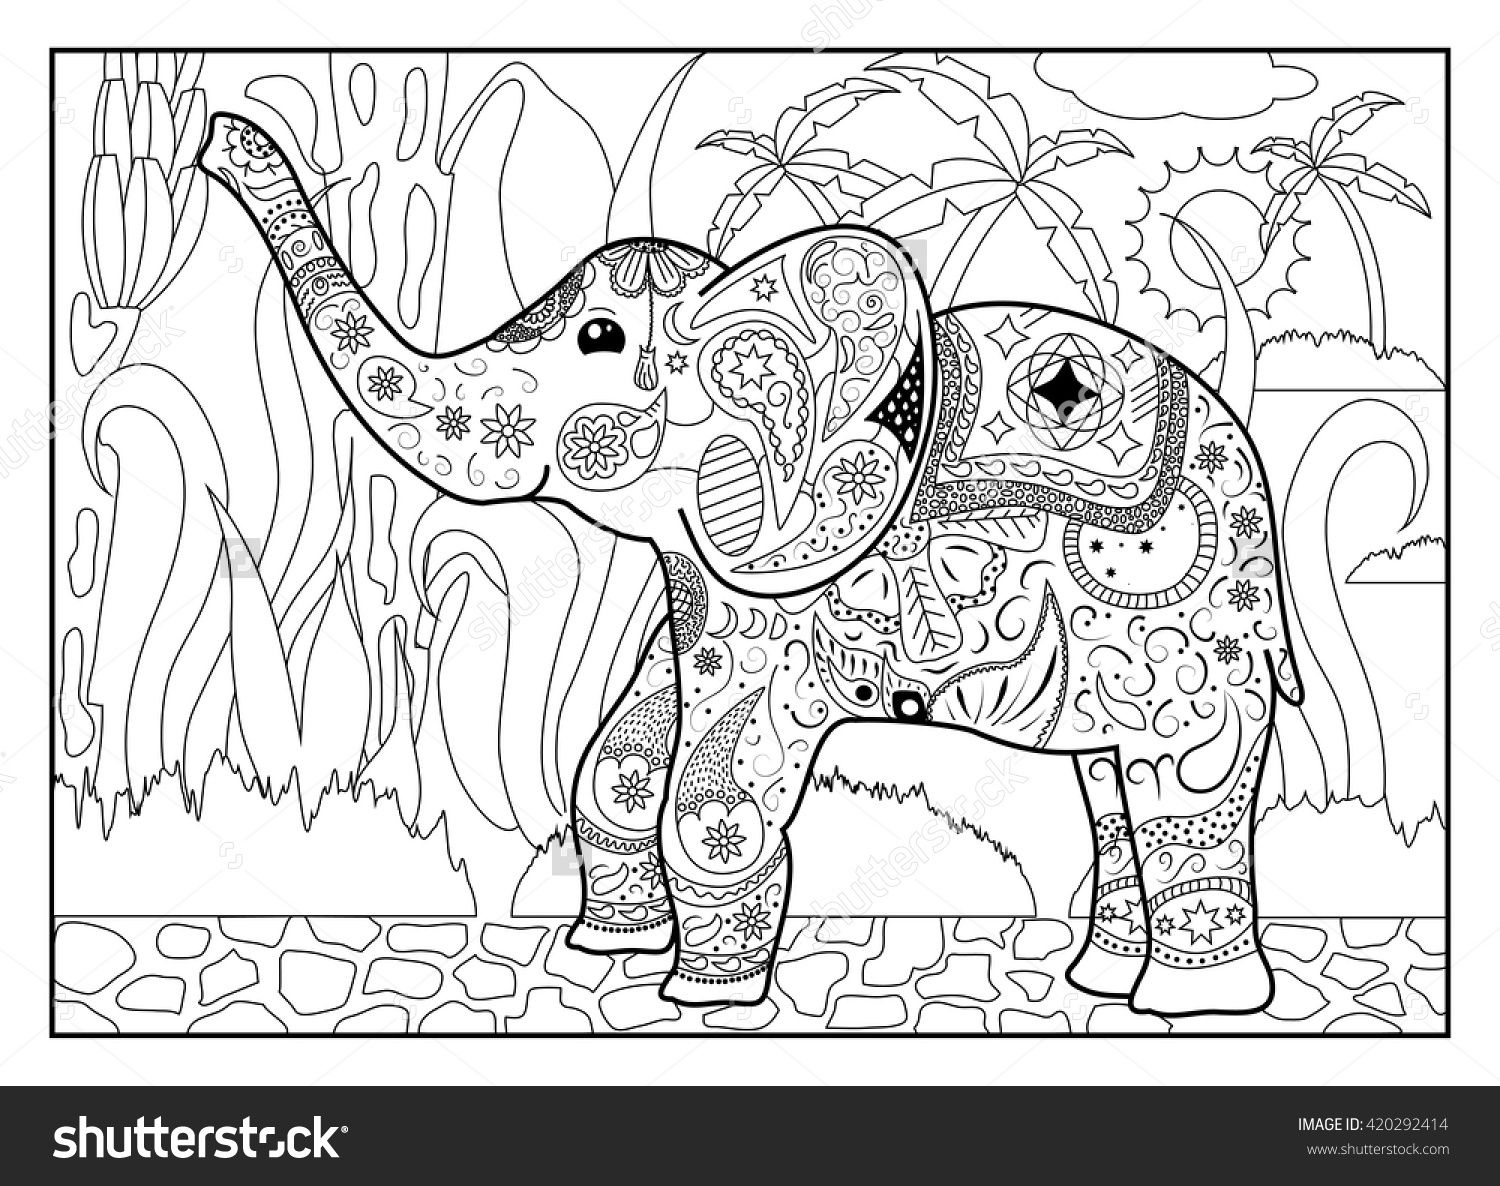 Elephant In Jungle Coloring Page Mandala Style Elephant Horizontal Coloring Page Mandala Elephant Coloring Page Jungle Coloring Pages Mandala Coloring Pages